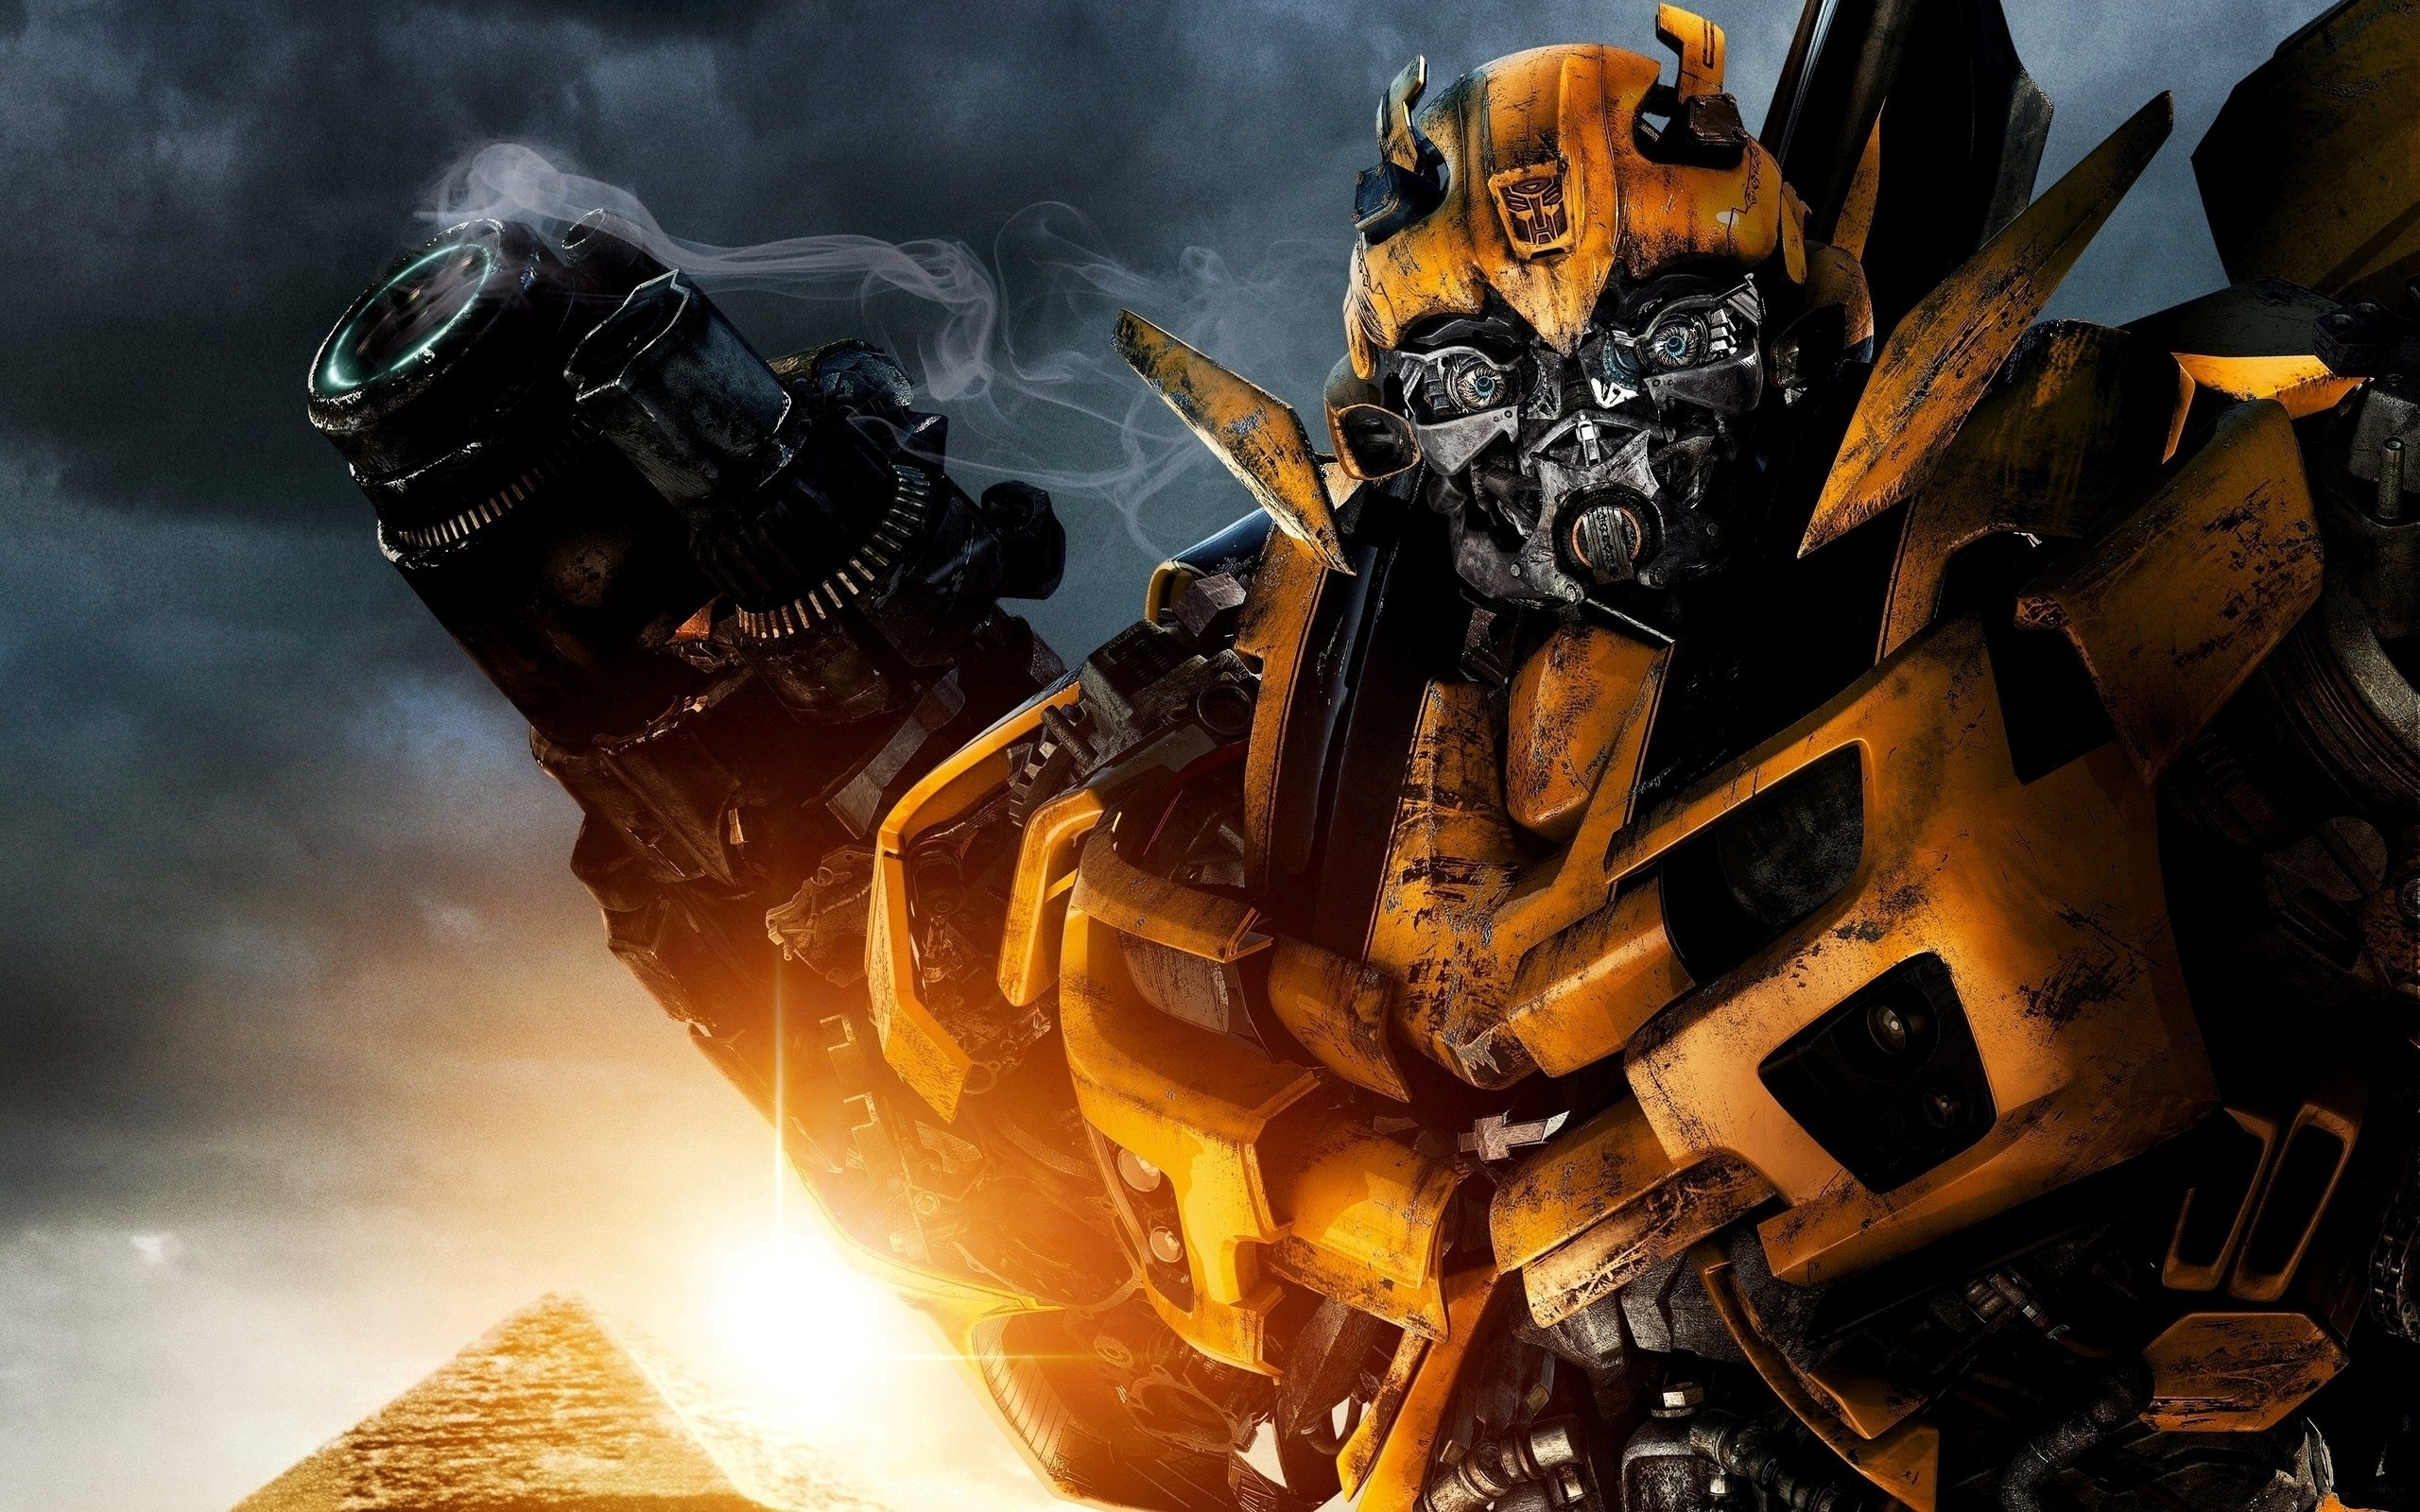 Bumblebee In Transformers 2 668.61 Kb